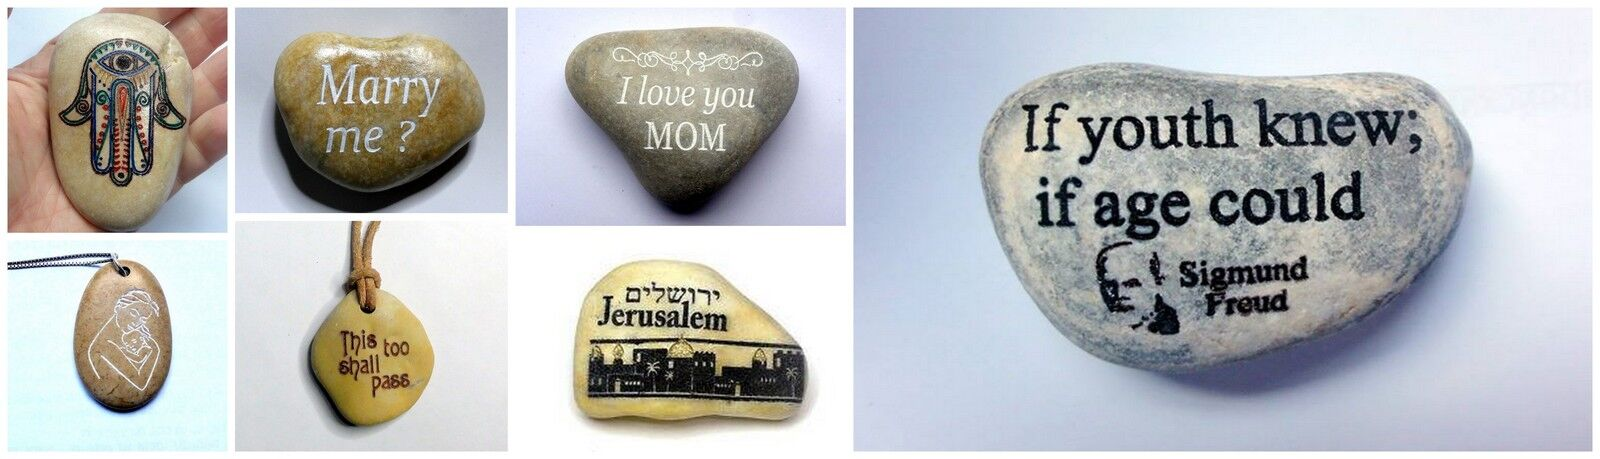 ISRA-STONES Personalized Gifts